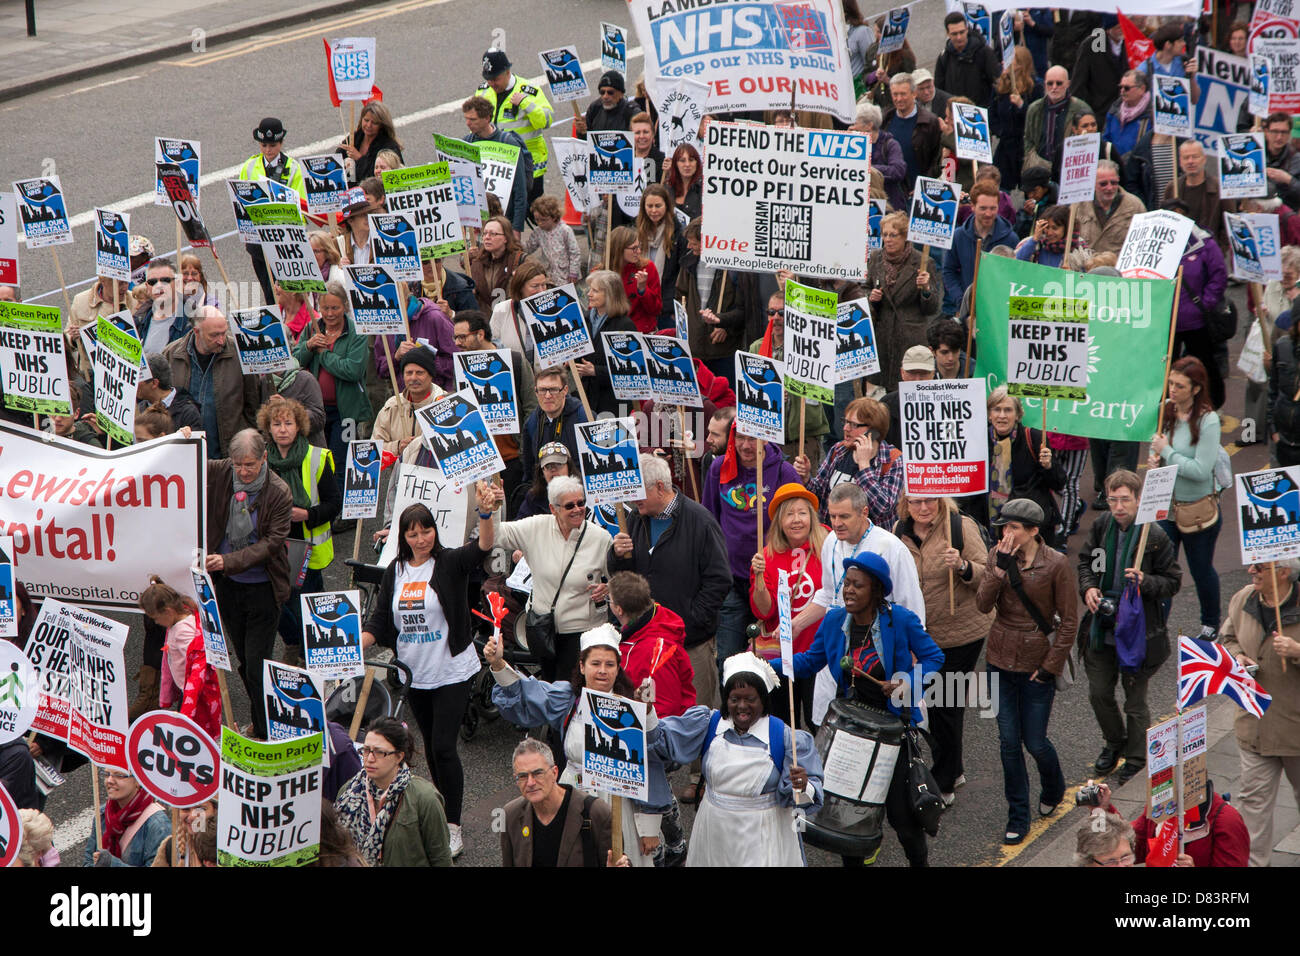 London, UK. 18th May 2013. London Londoners protest against privatisation of medical services and cuts to the NHS. - Stock Image